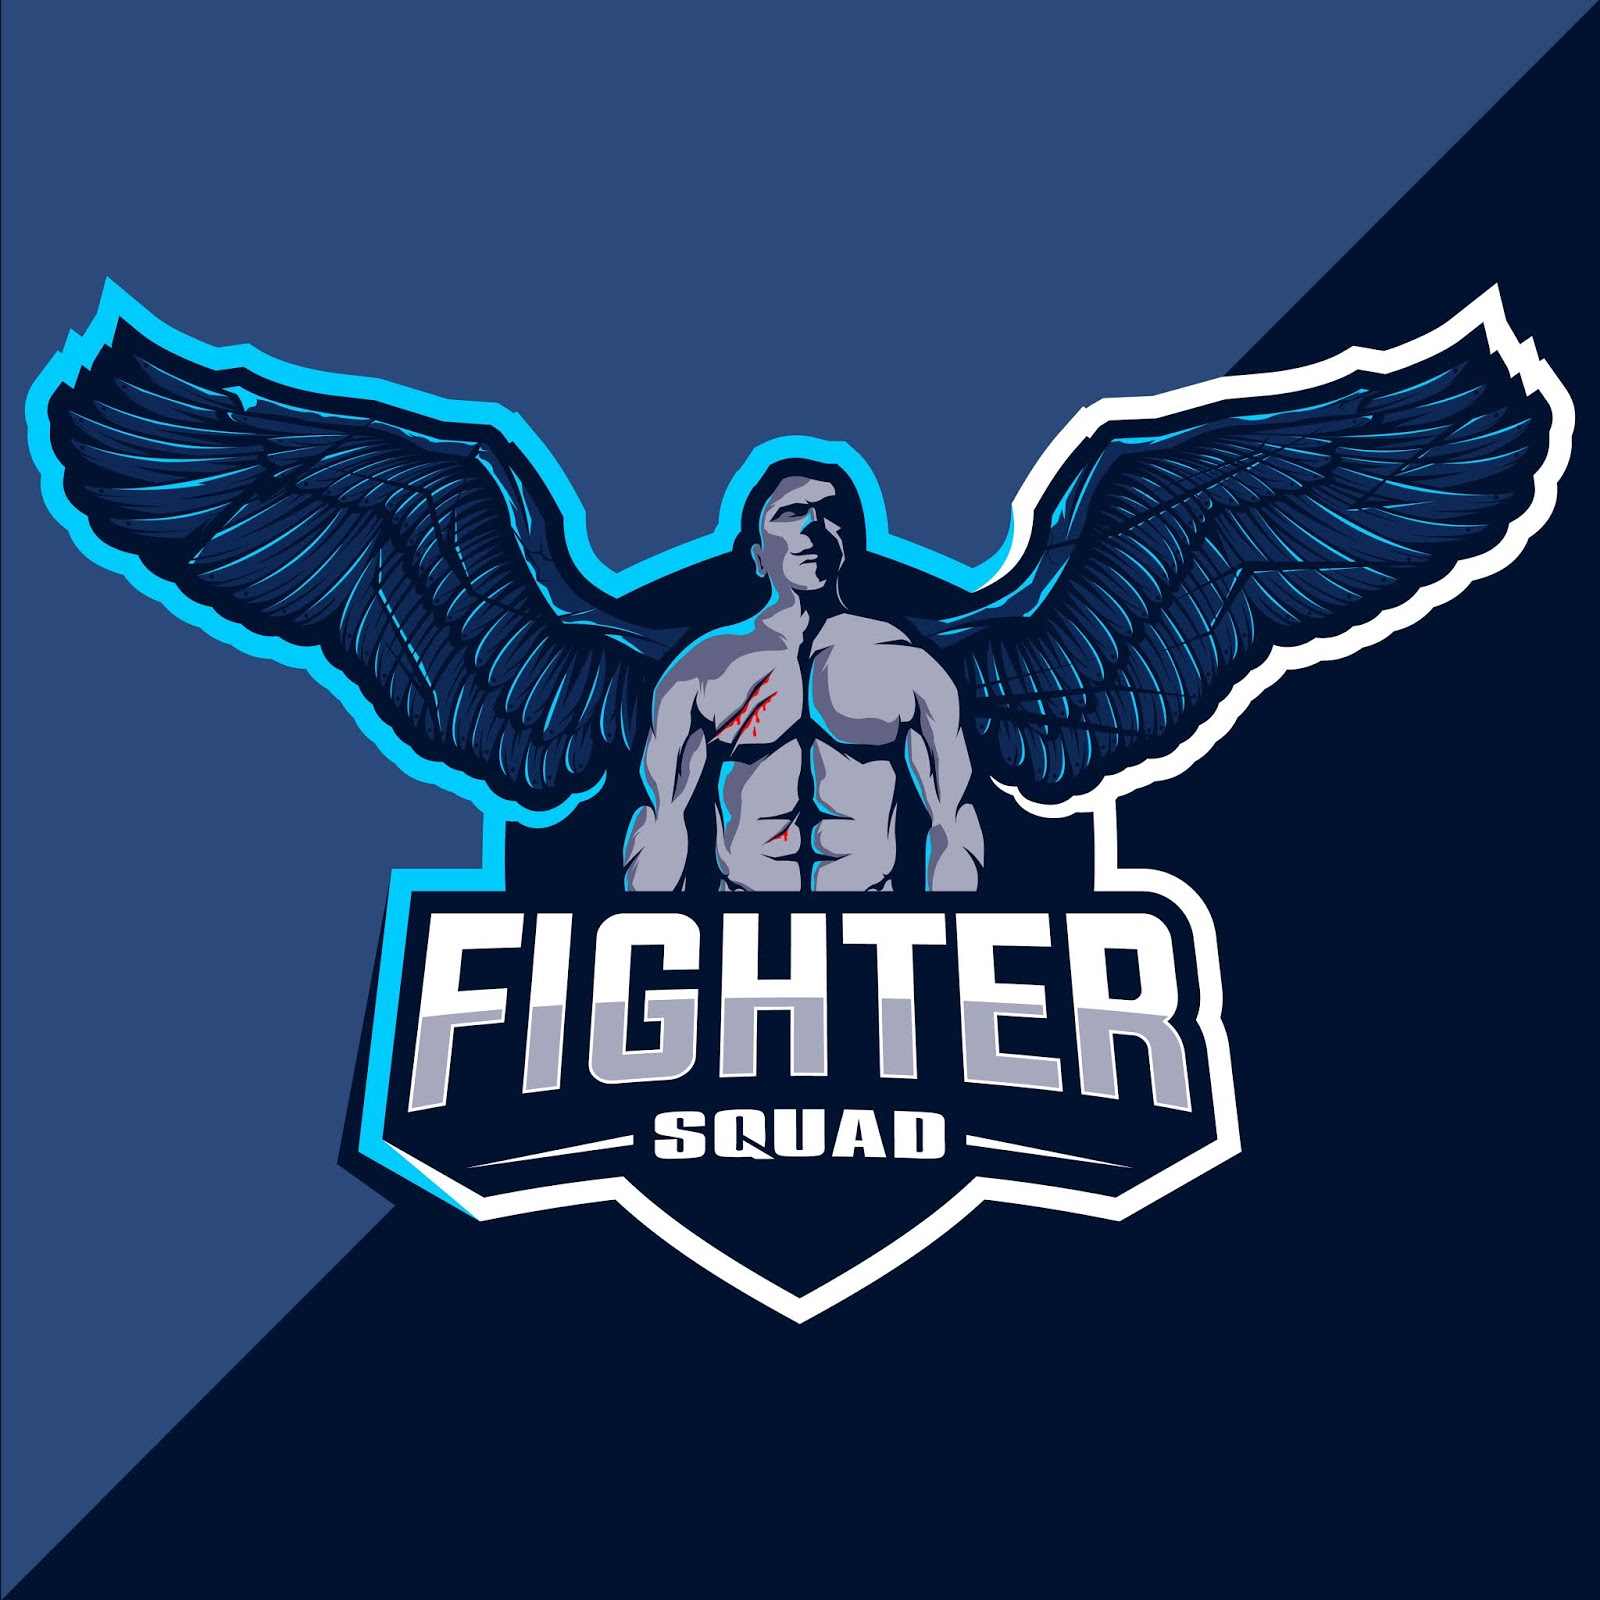 Fighter Mascot Esport Logo Design Free Download Vector CDR, AI, EPS and PNG Formats